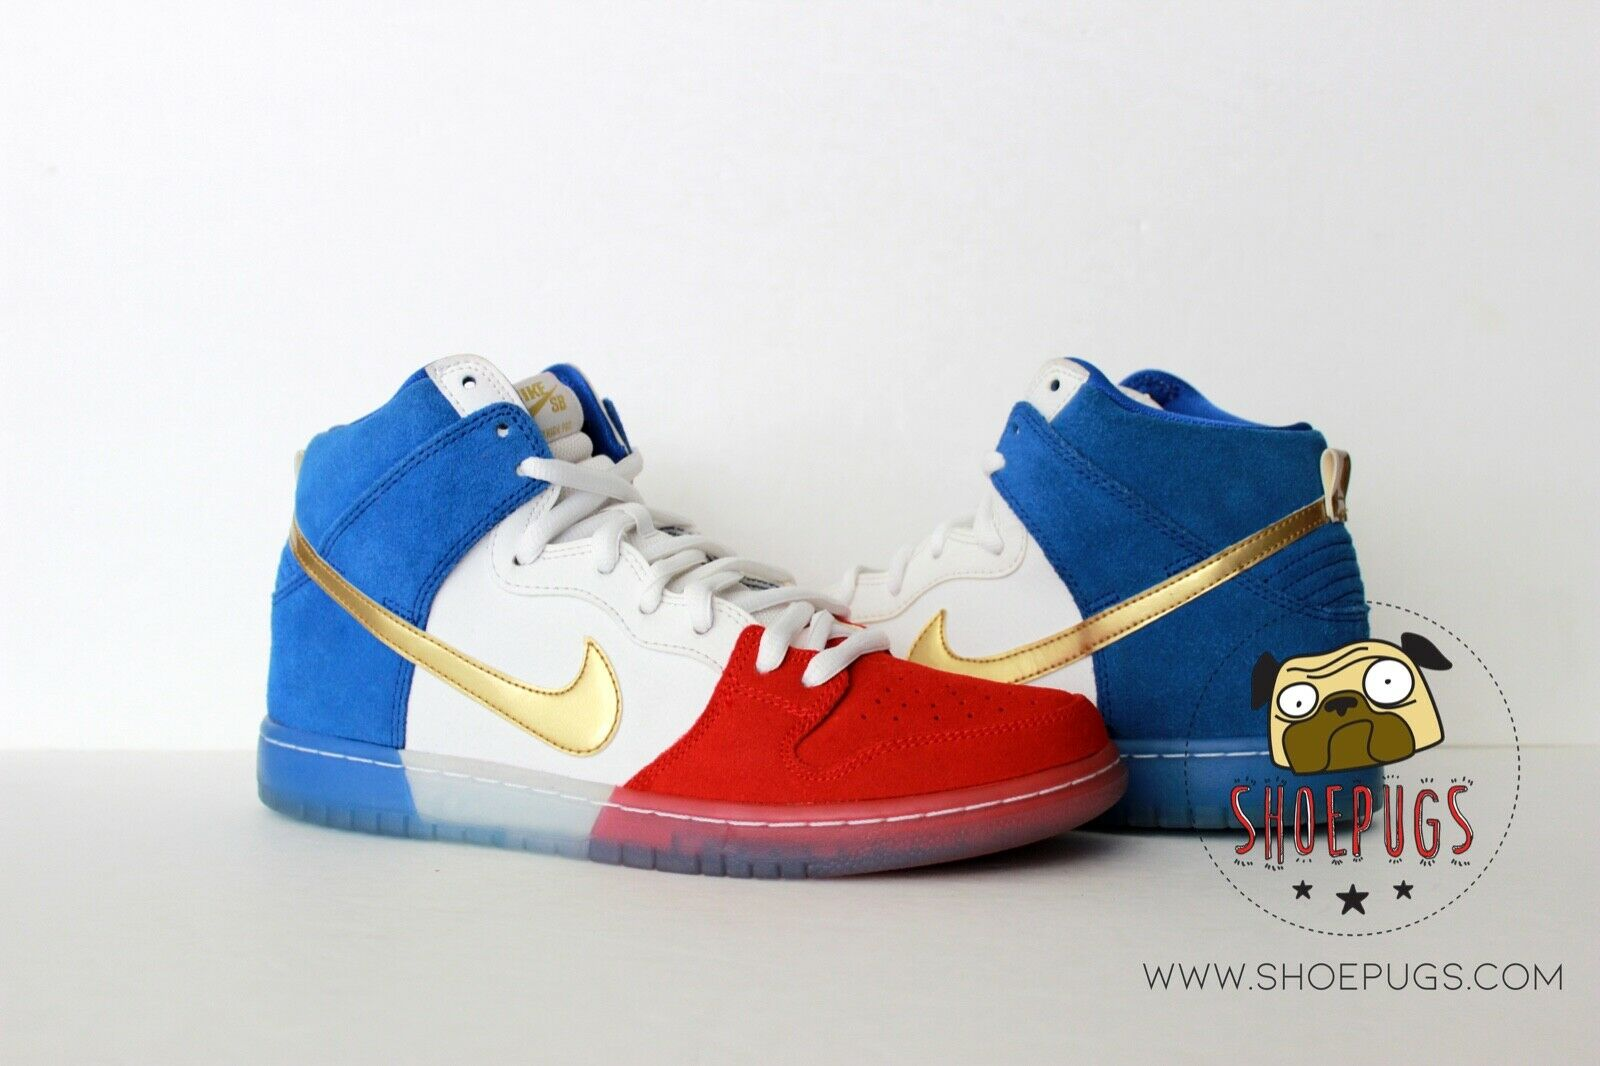 2016 Nike Dunk SB High Tricolor USA sz 9.5 w  Box red royal    TRUSTED SELLER